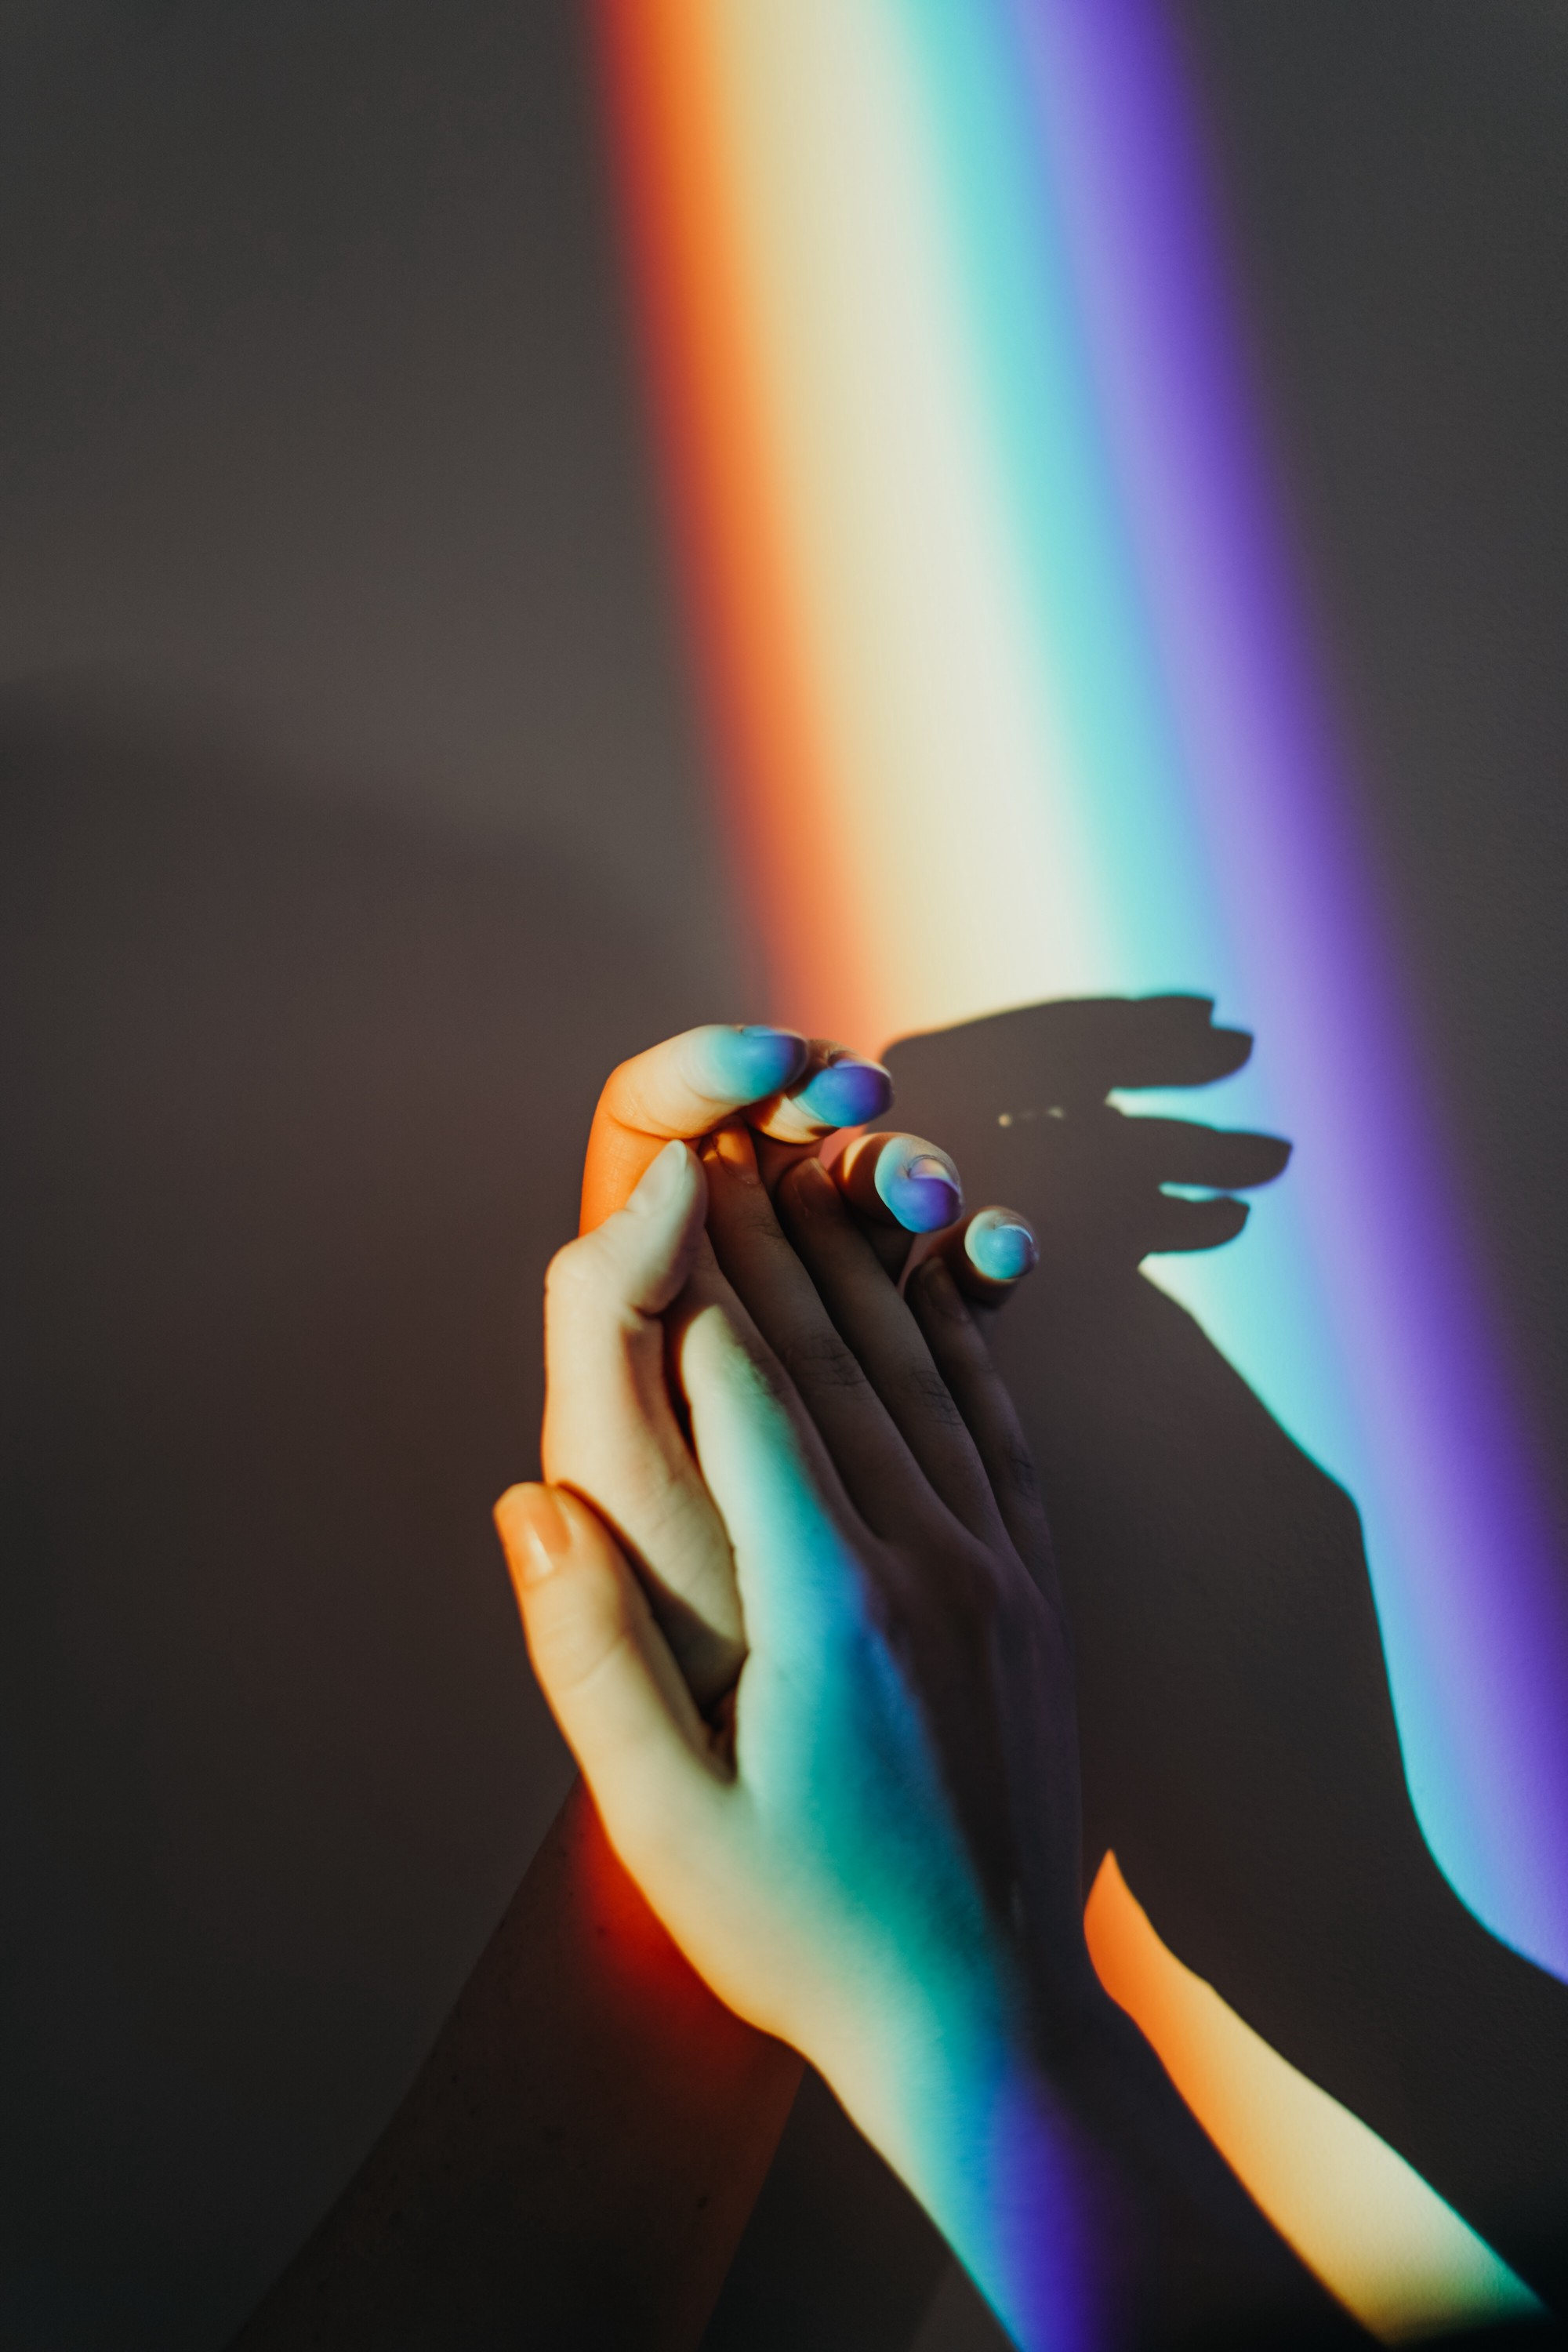 An image of two hands holding each other, with a rainbow light falling across them.